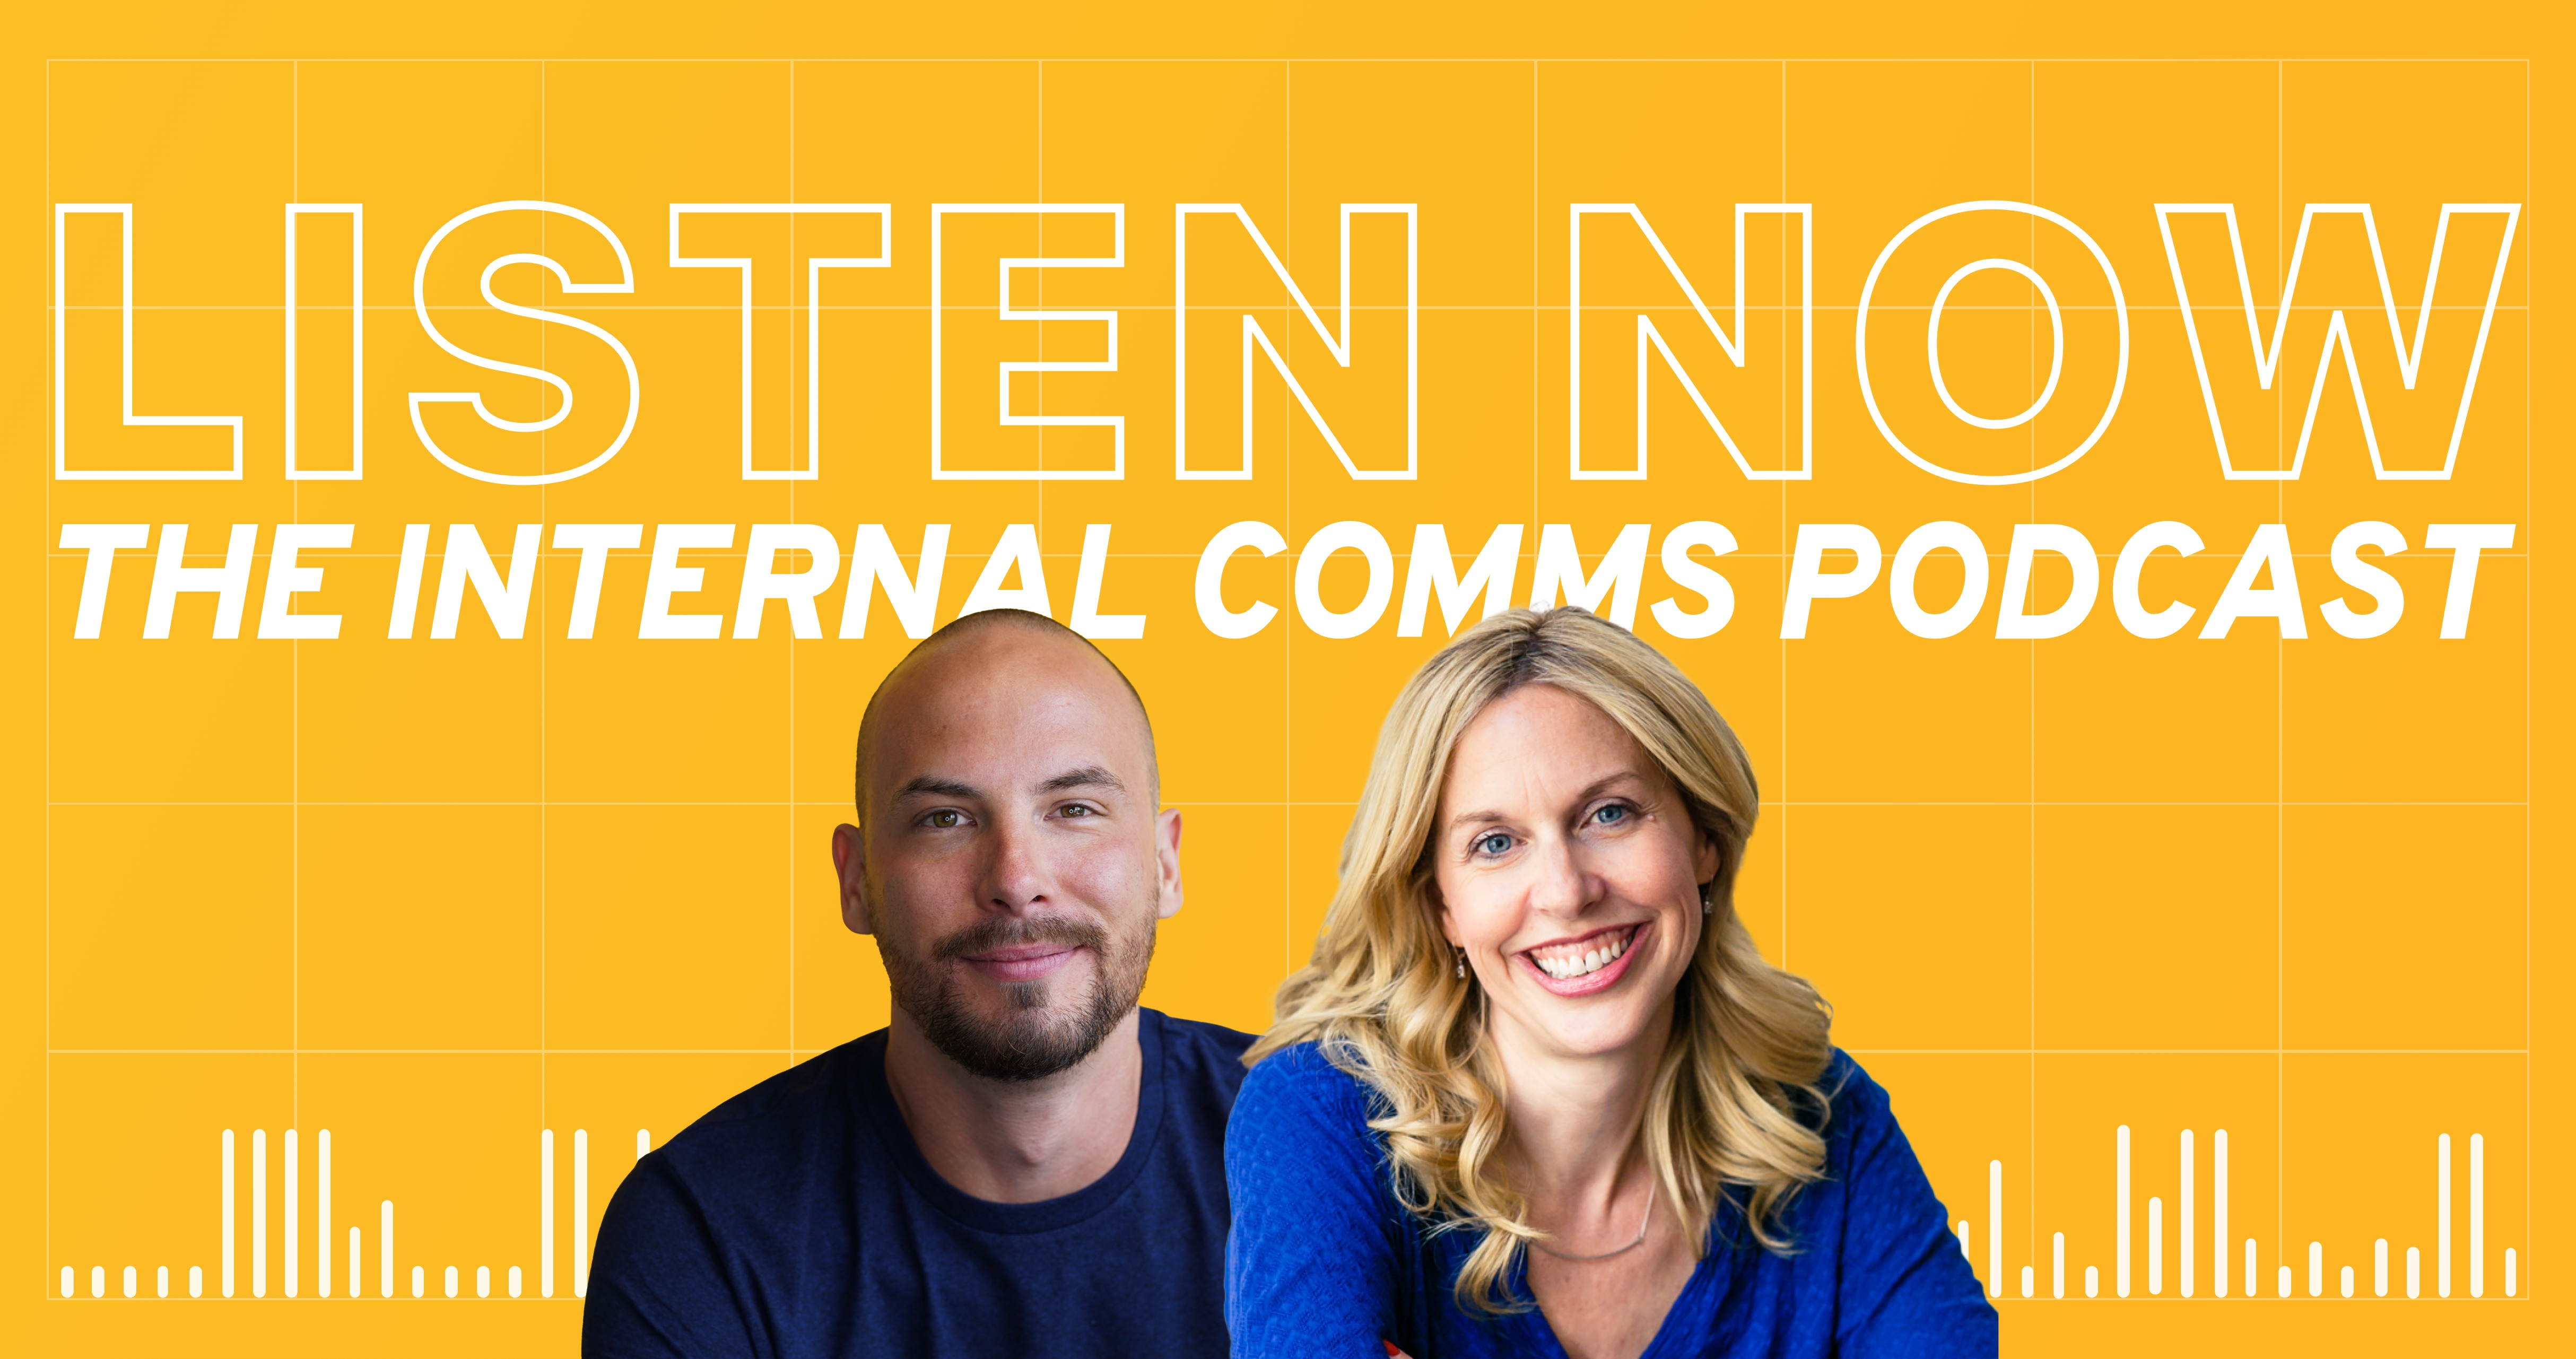 Podcast: How to get more creative in Internal Comms